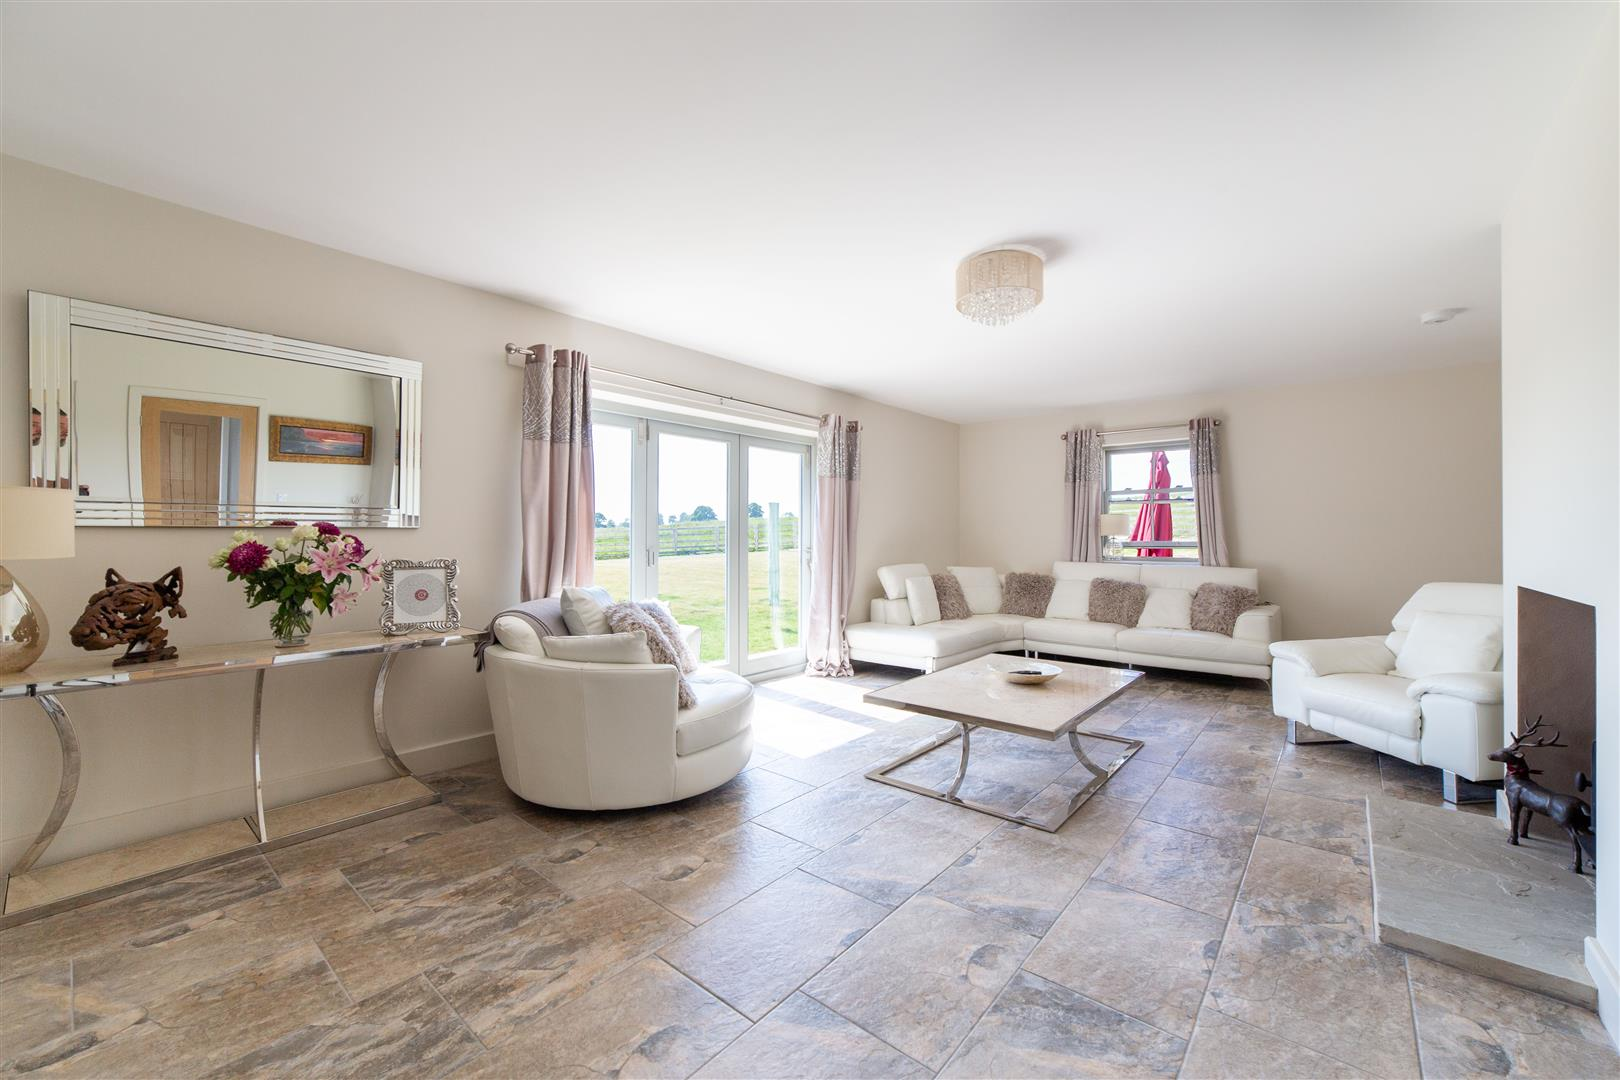 4 bed detached house for sale, Hexham  - Property Image 14